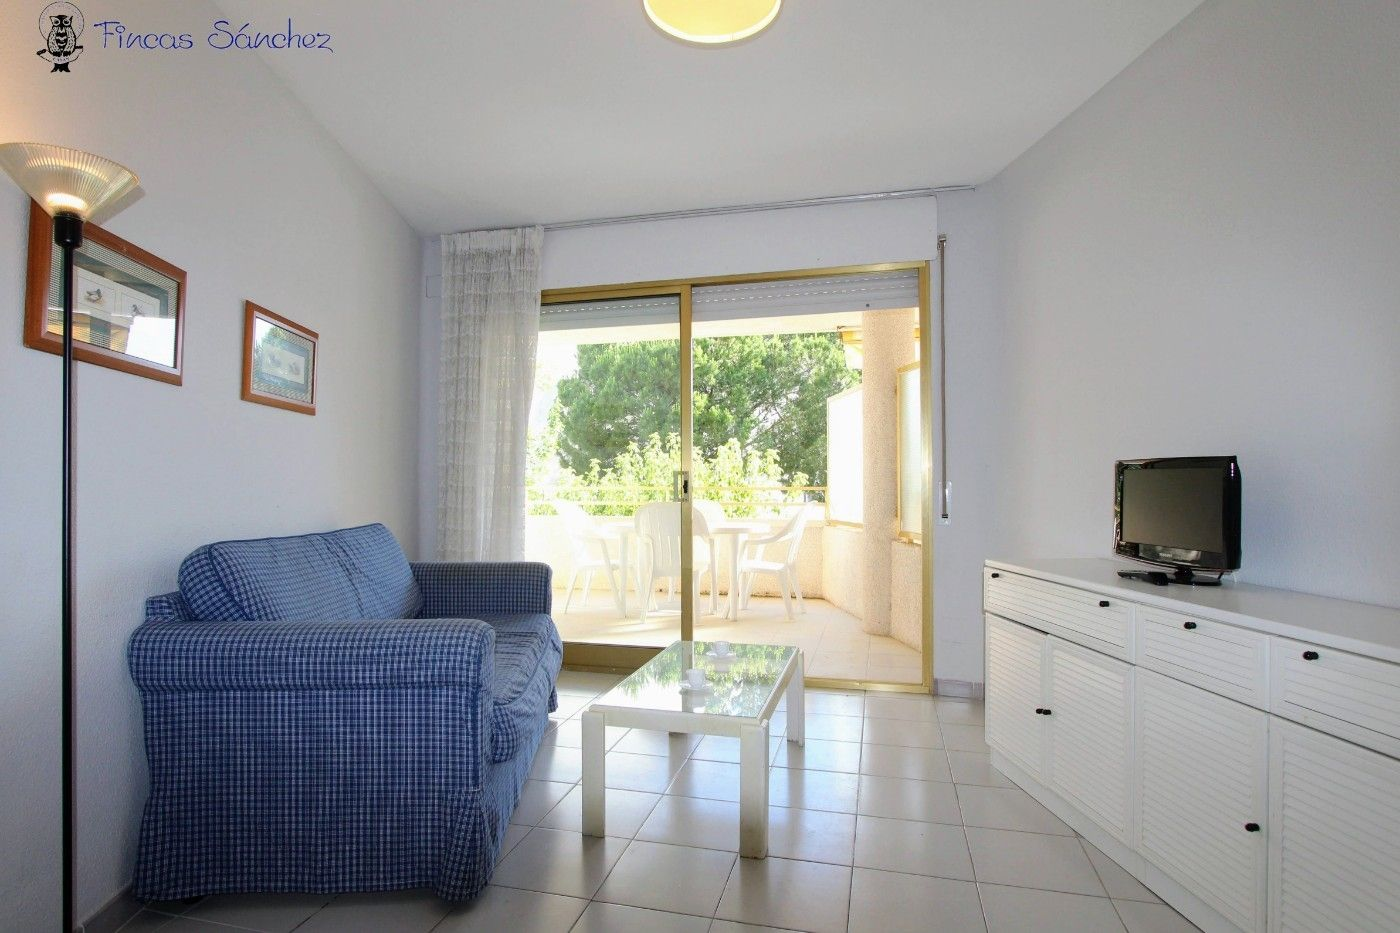 Apartamento  Vilafortuny. Ideal 2ª residencia!